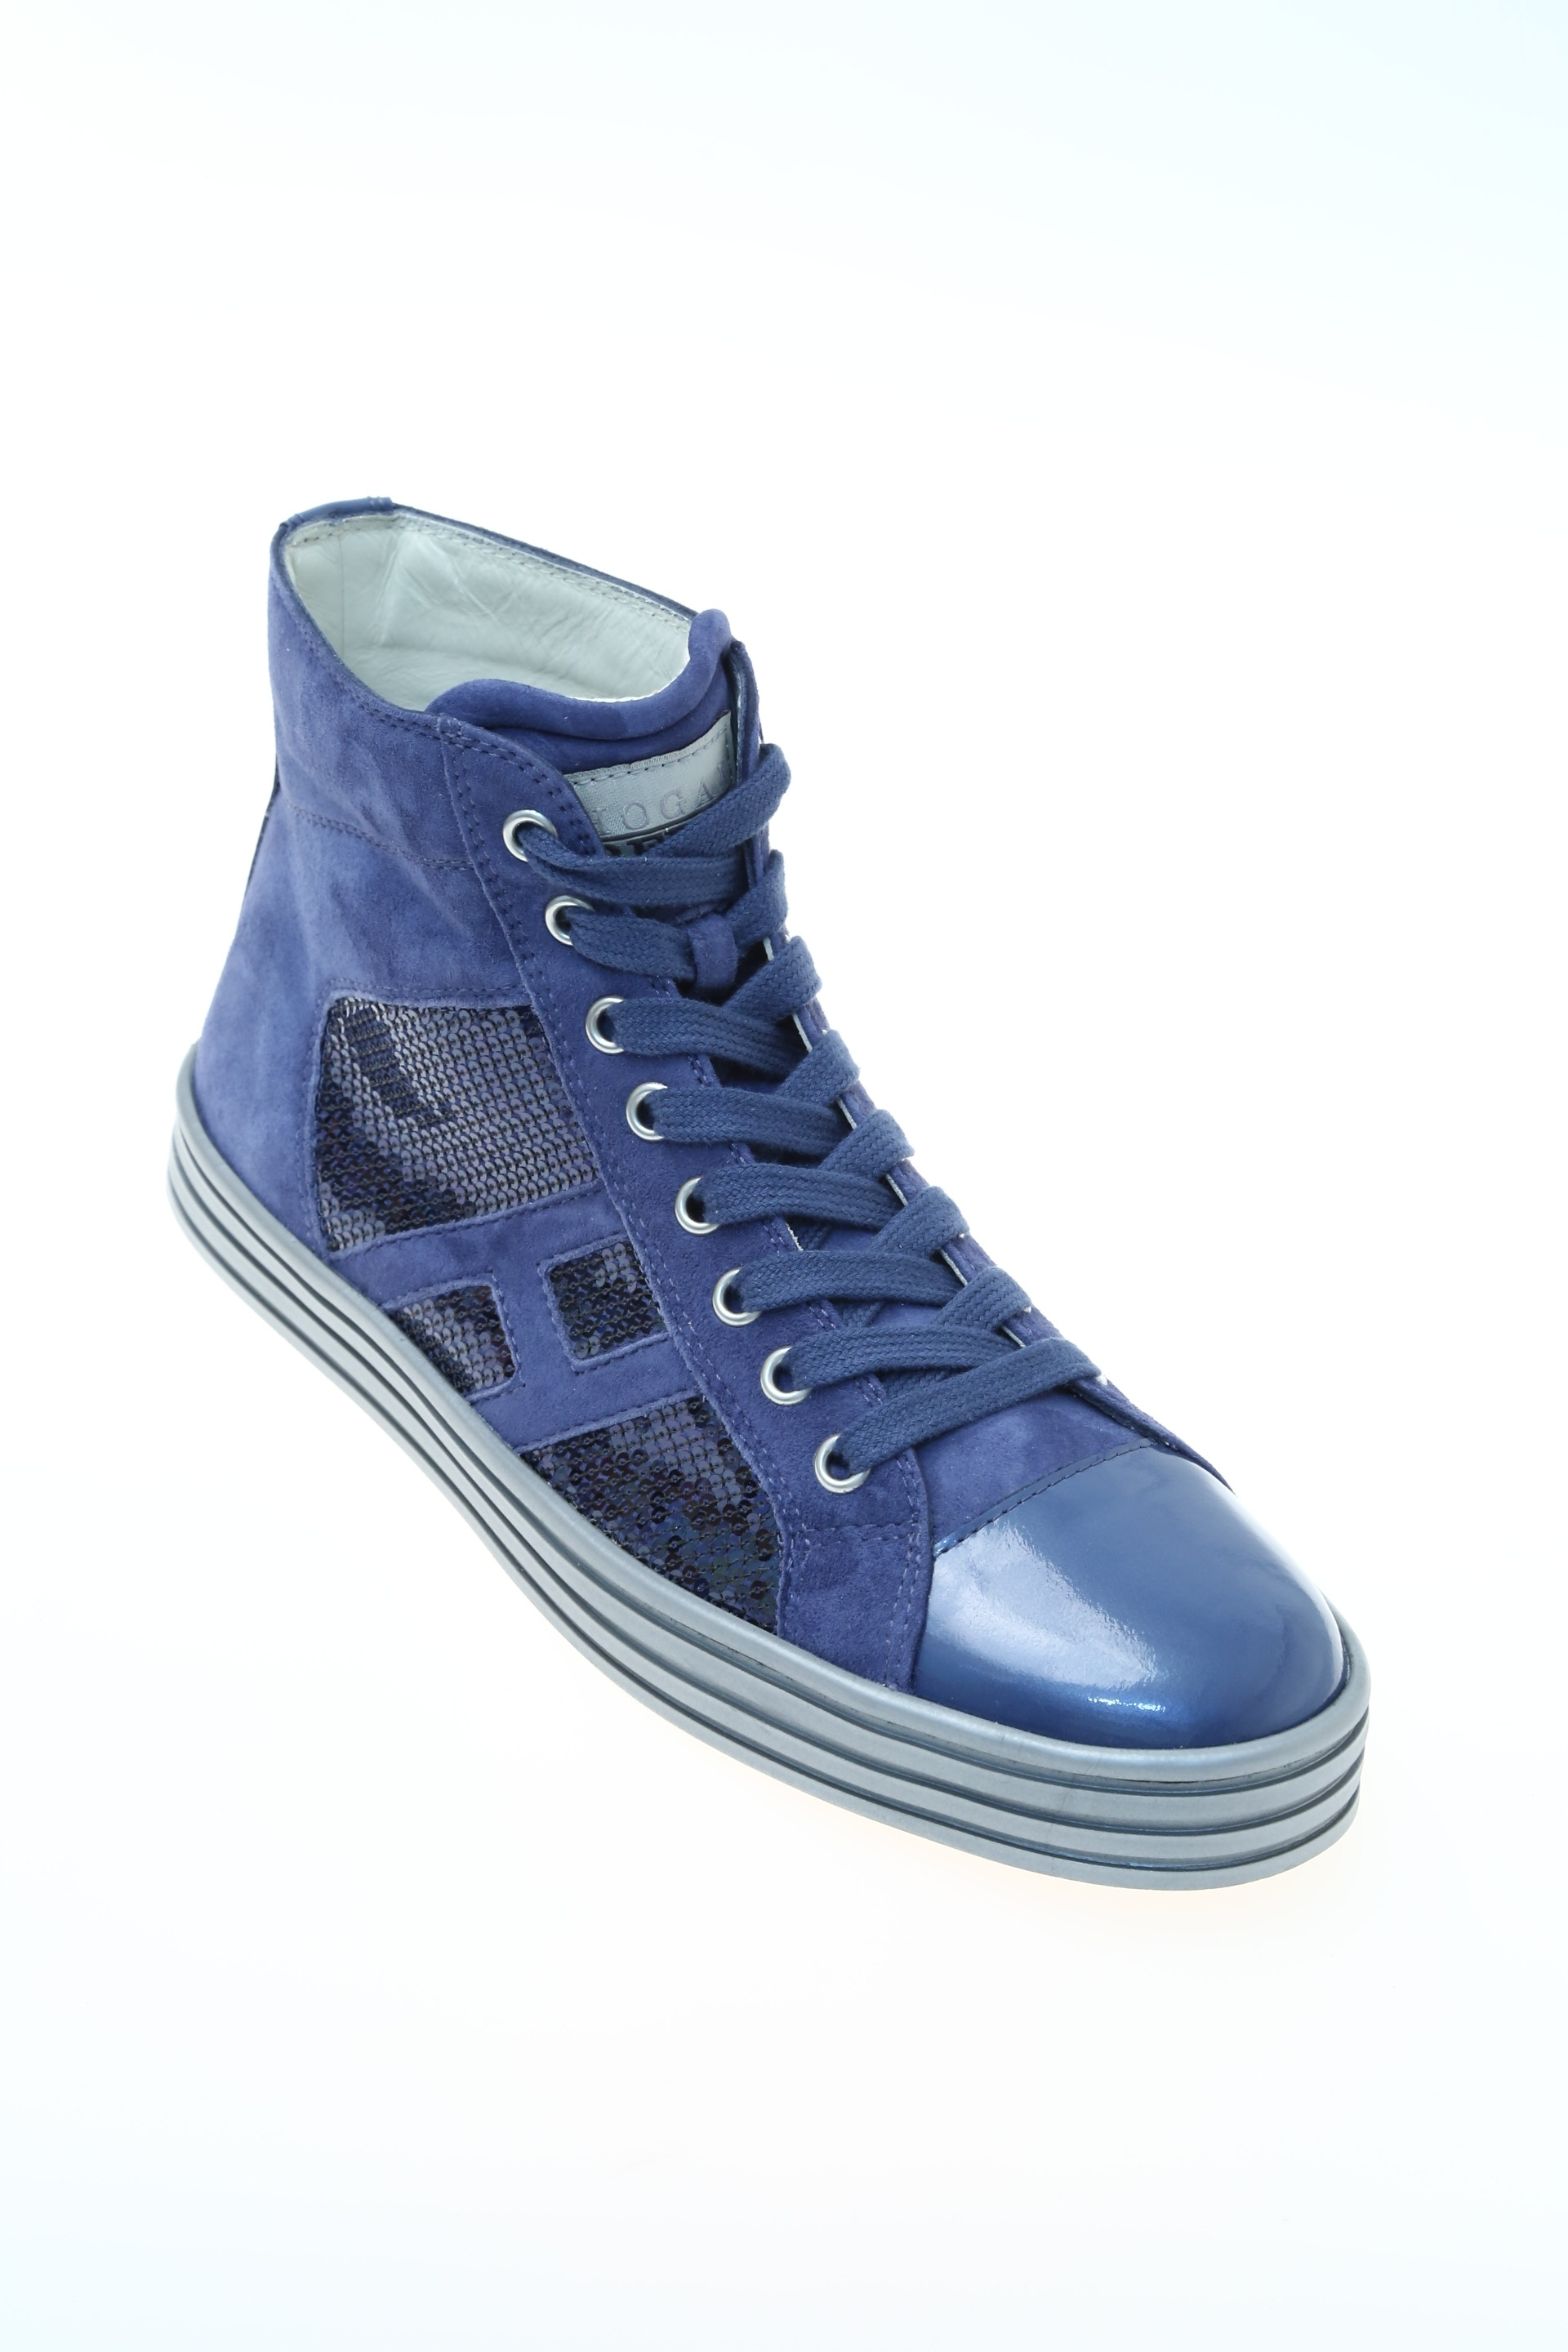 scarpe hogan rebel saldi